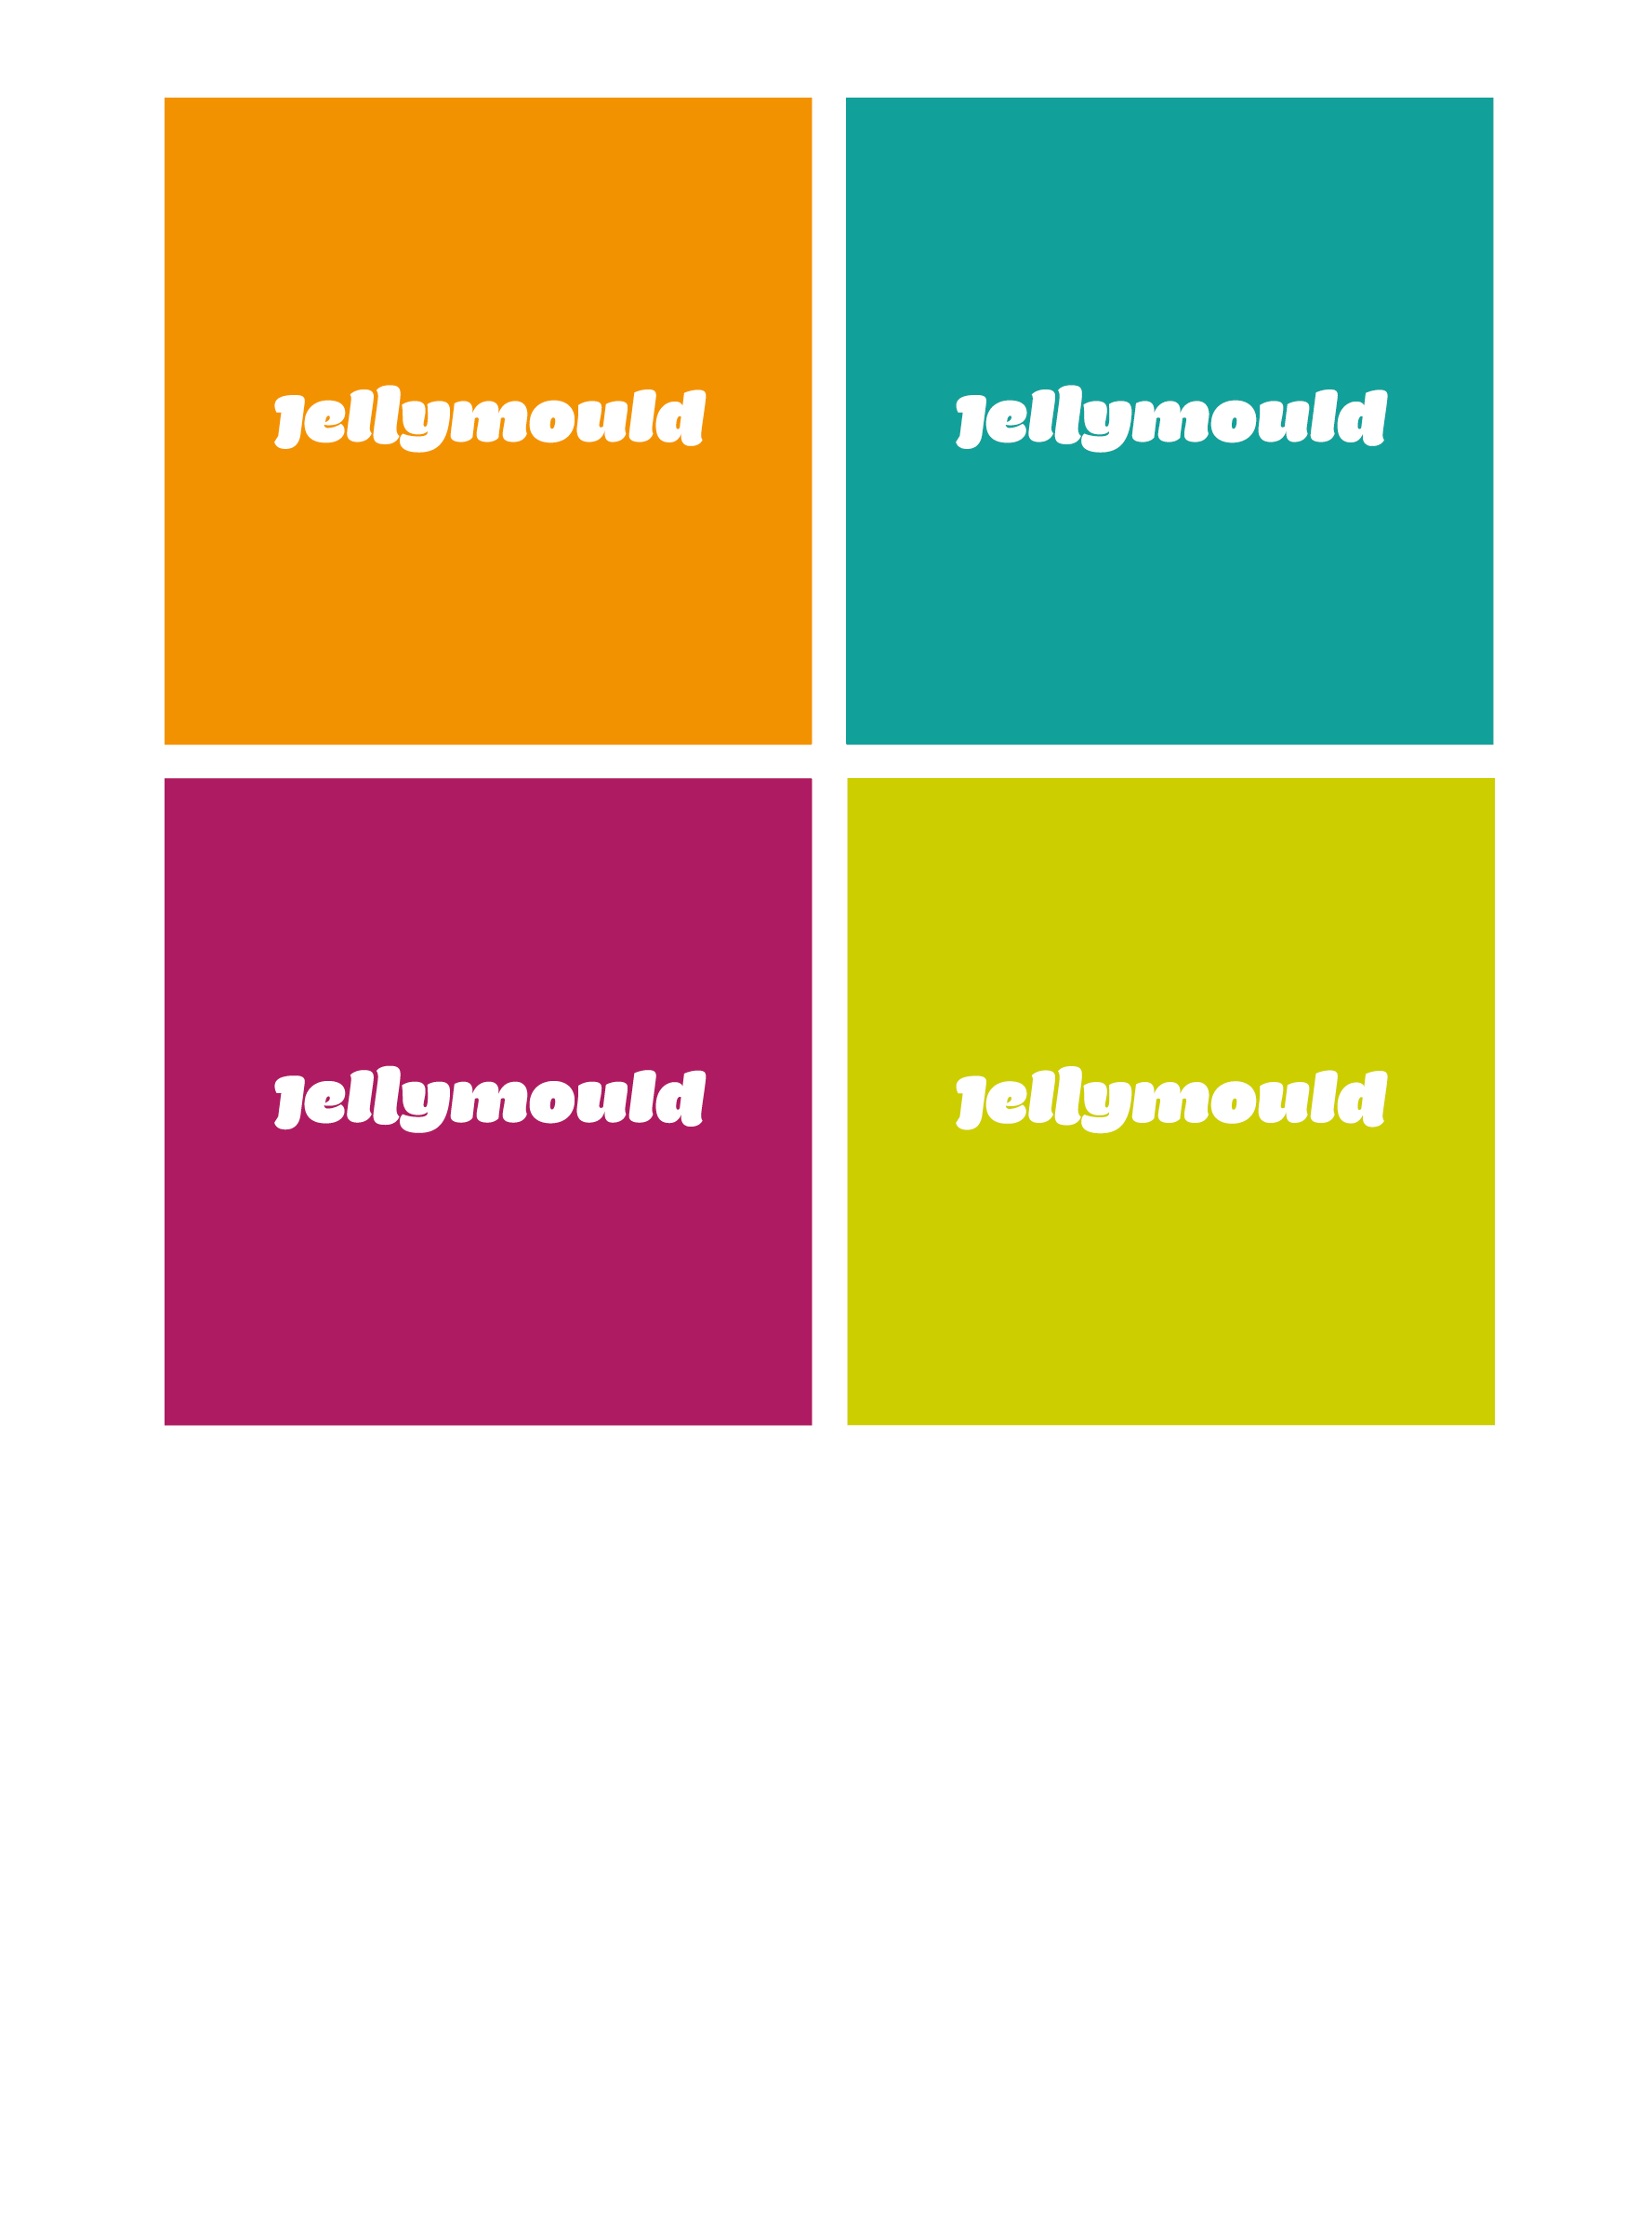 jellymould-cards.png